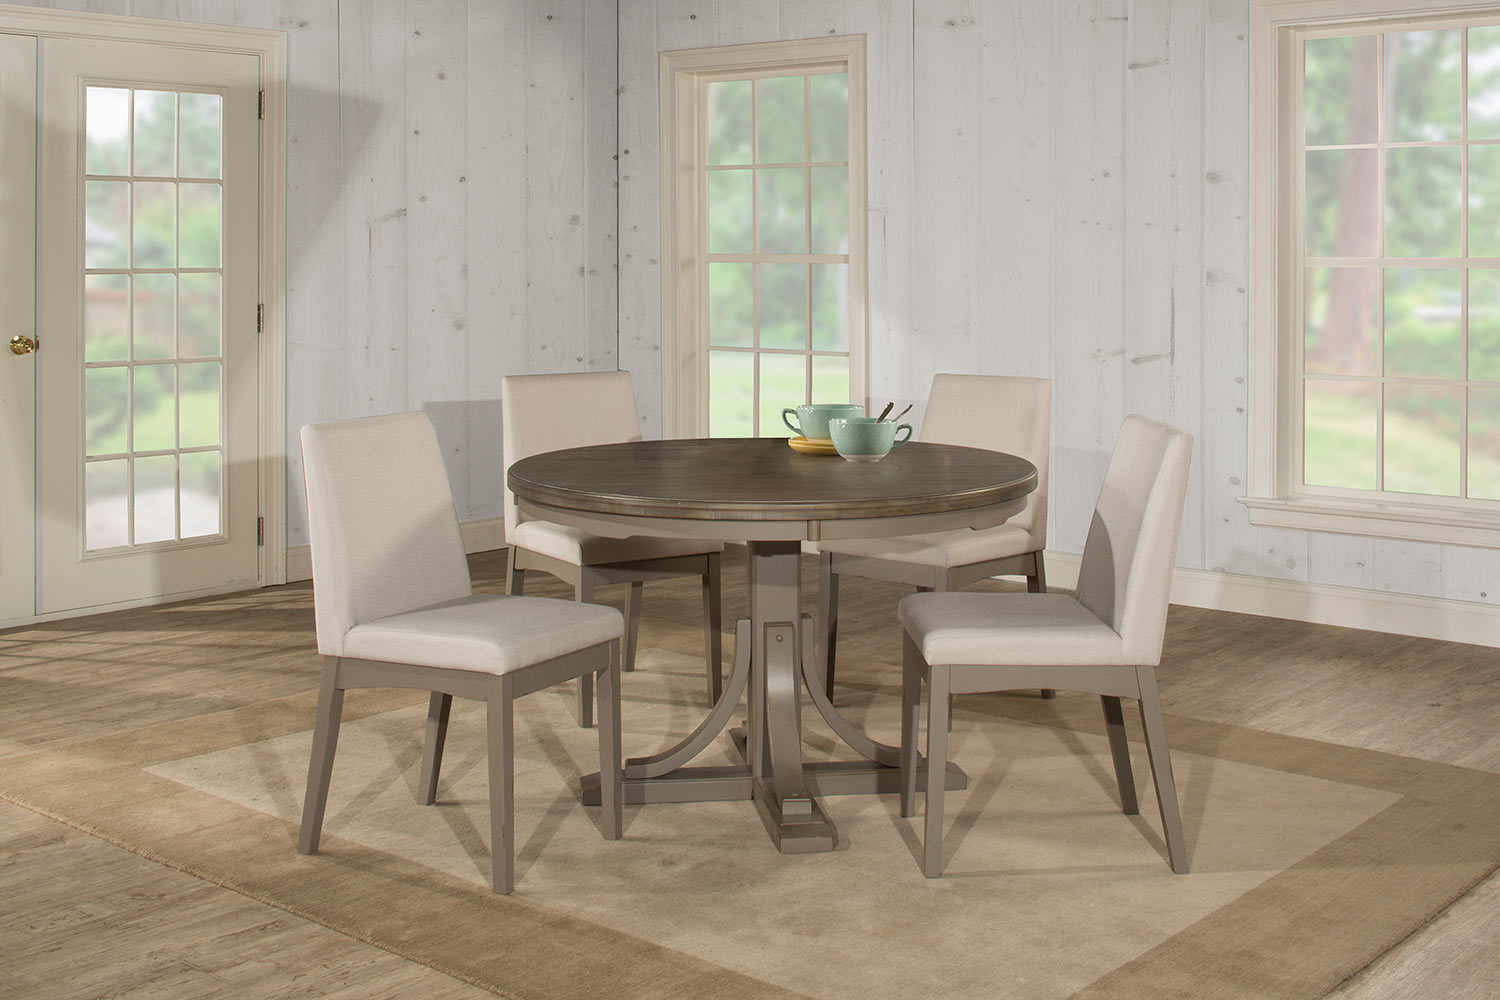 Hillsdale Clarion 5-Piece Round Dining Set with Upholstered Chairs - Gray - Fog Fabric